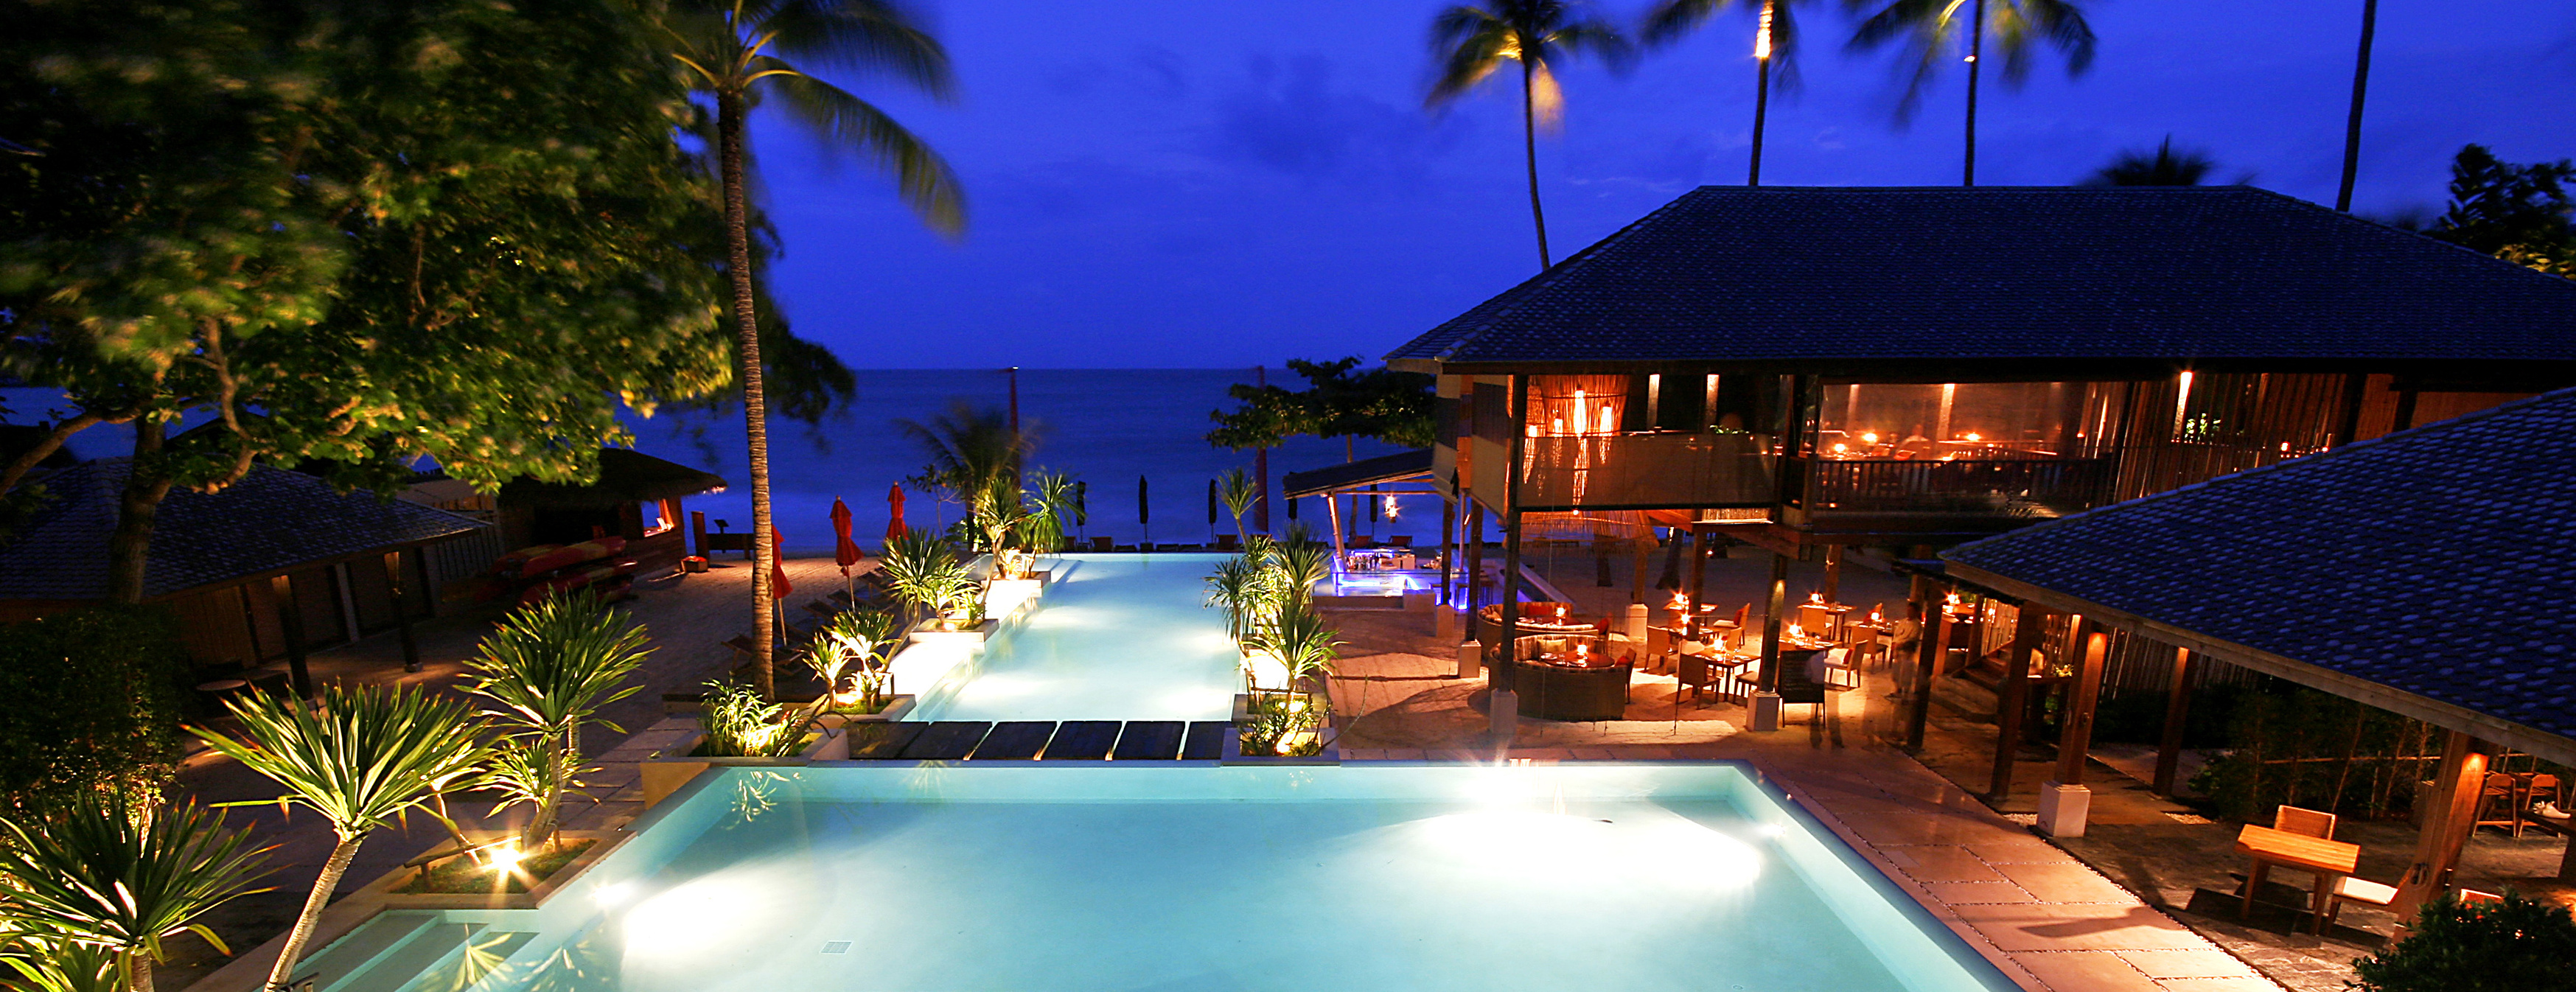 anantara-rasananda-night-view